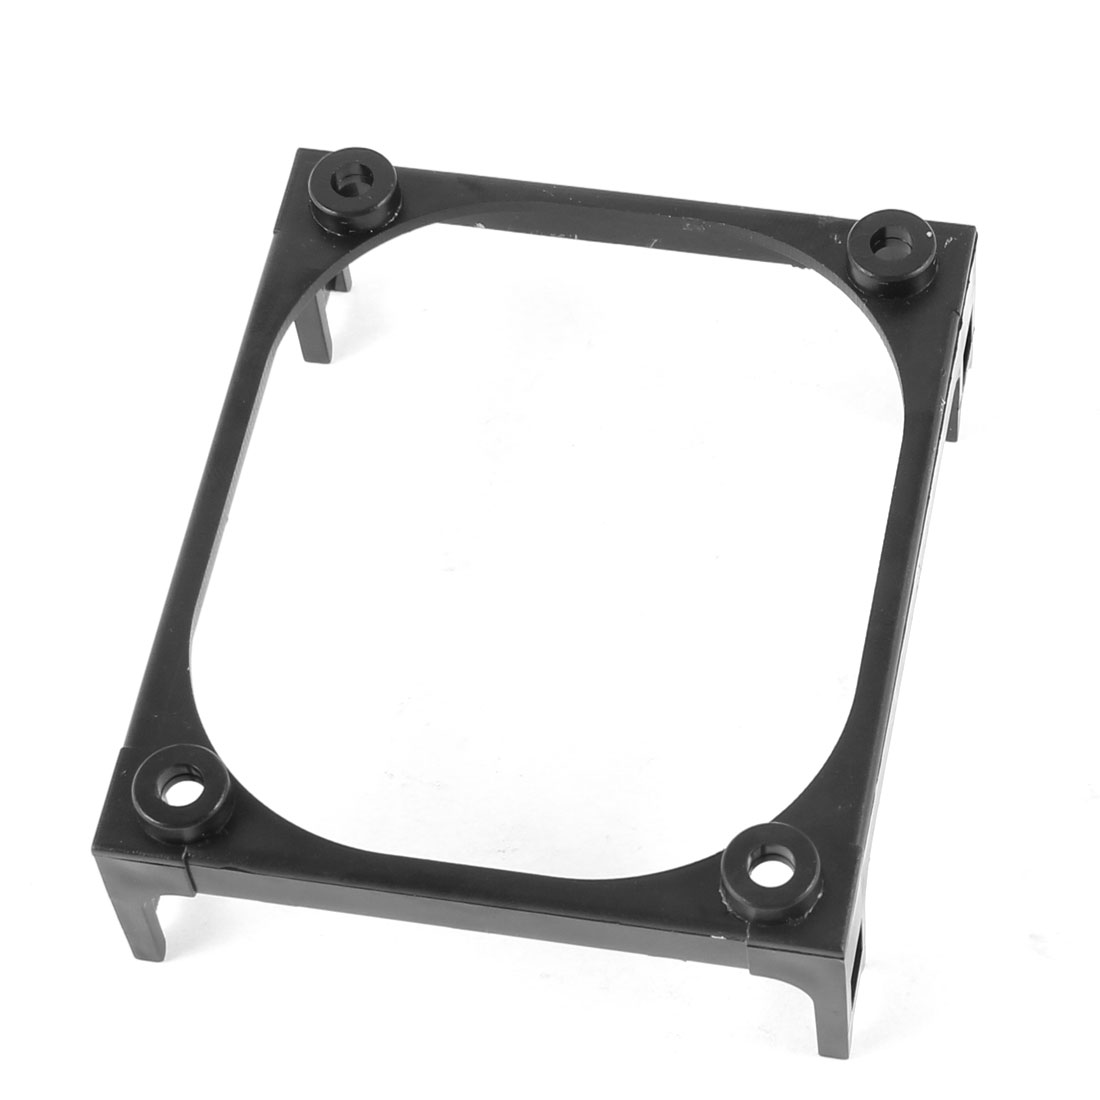 Computer CPU Heatsink Fan Mounting Retention Bracket Black for Socket 478